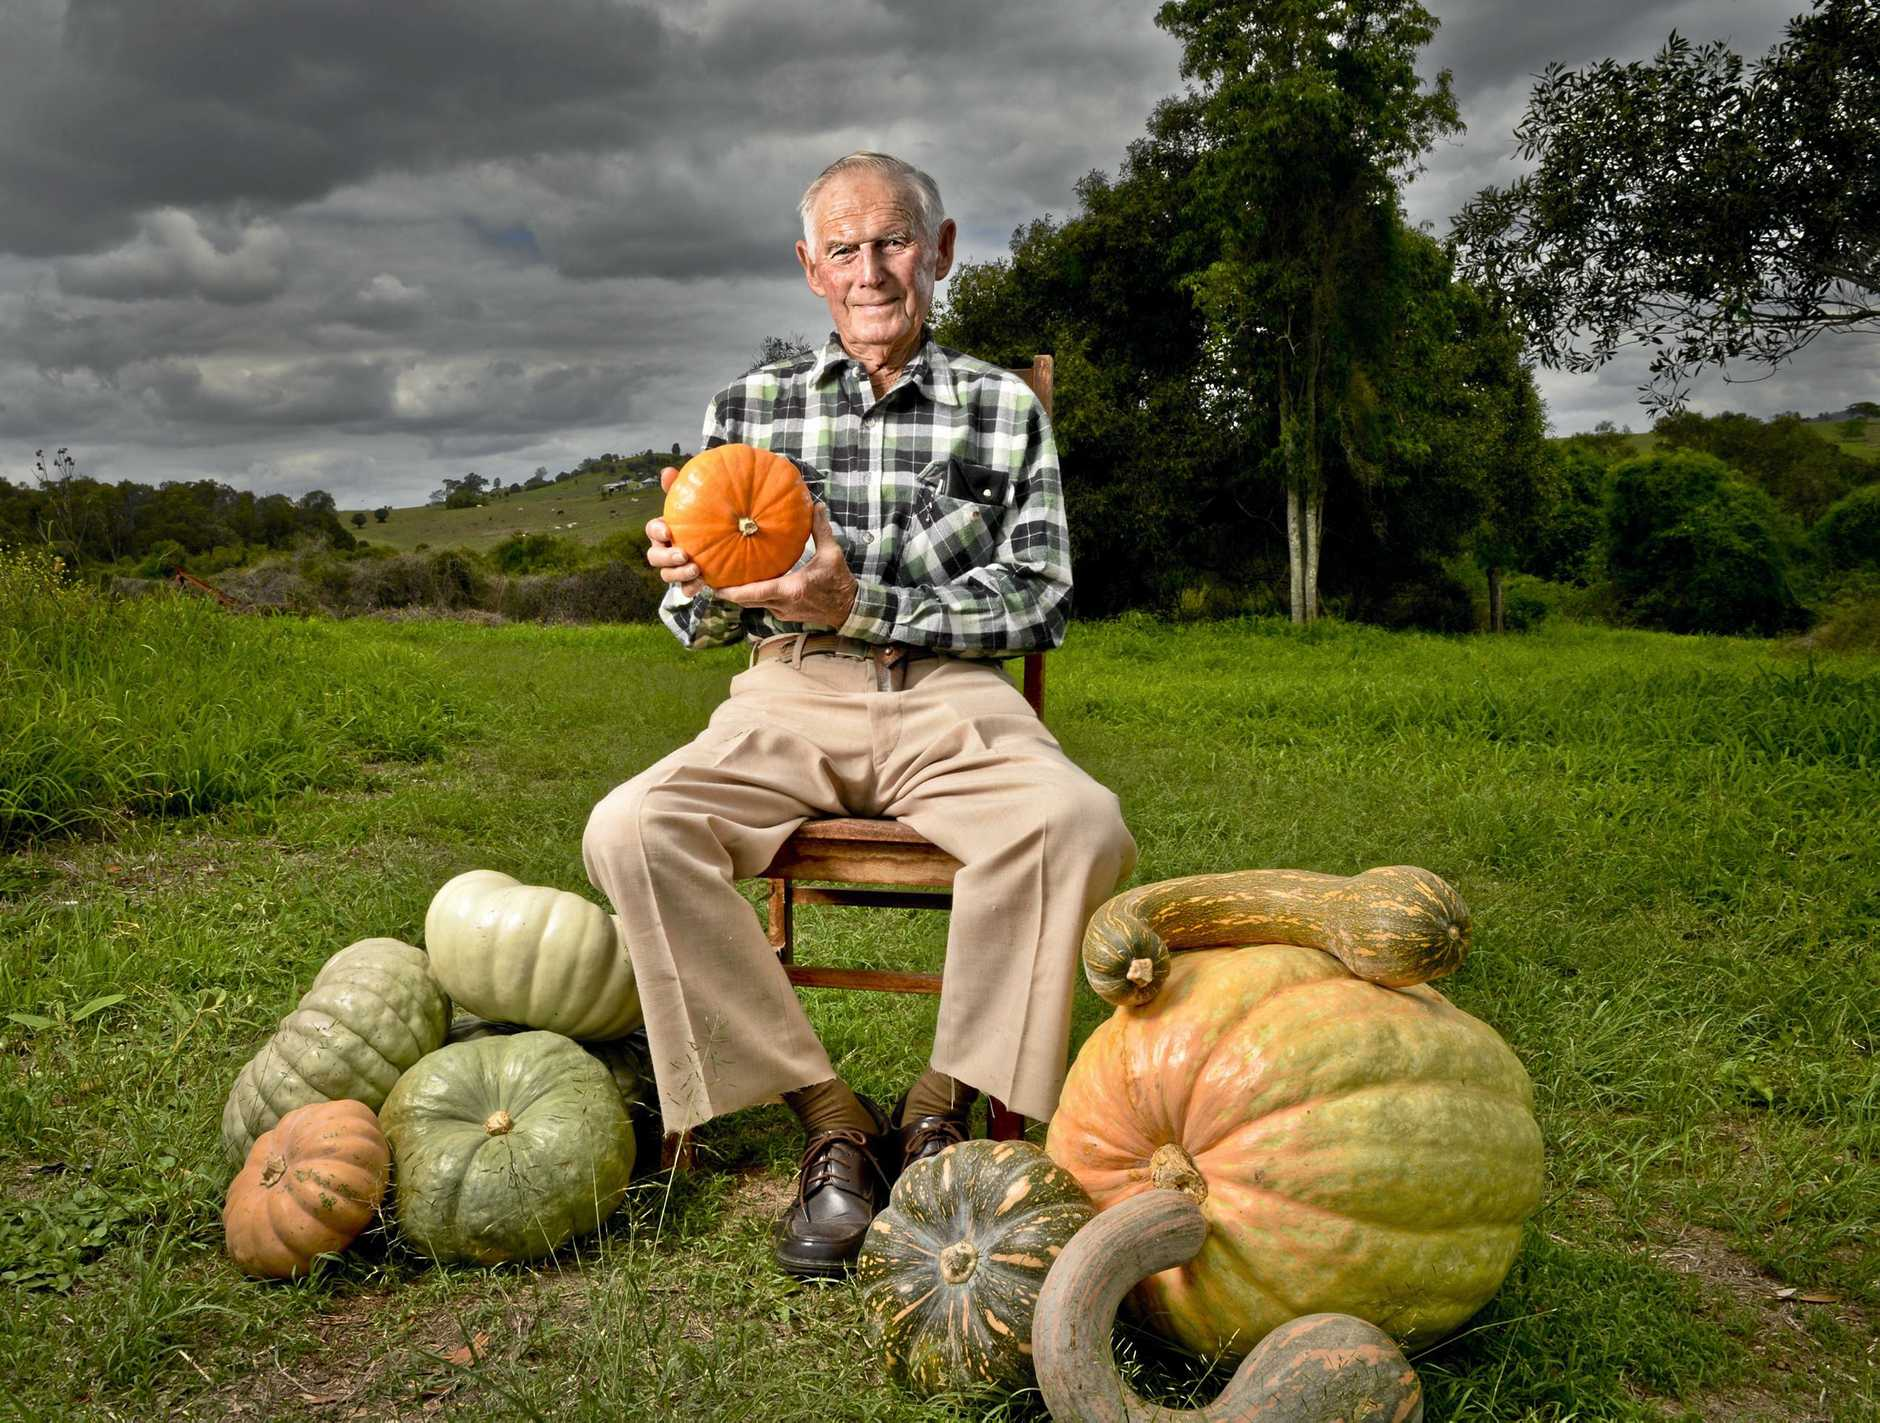 EKKA LEGEND: Syd Haag has been growing pumpkins on his Boonah farm for more than 30 years.